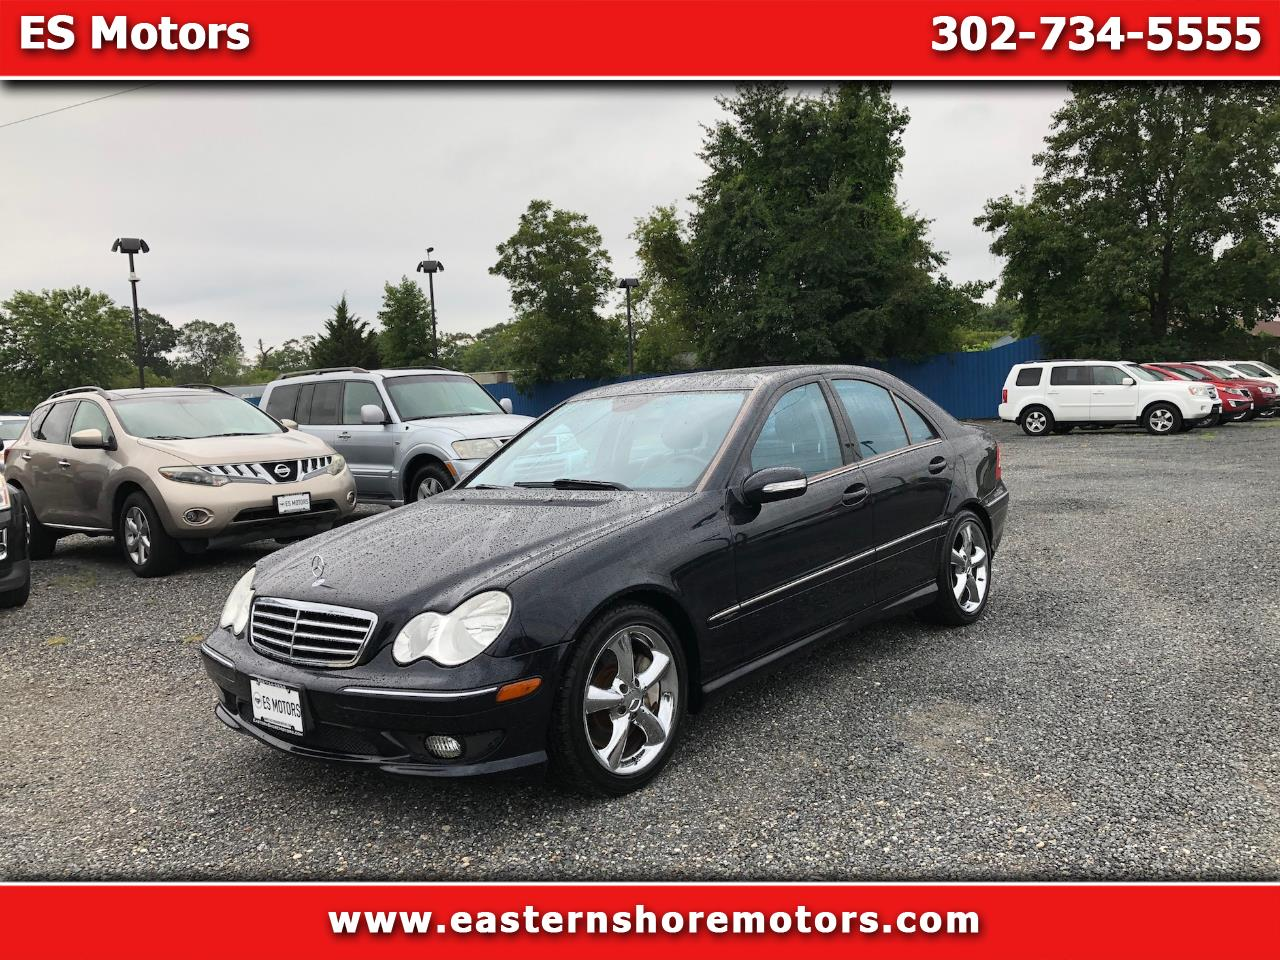 2005 Mercedes-Benz C-Class C230 K Sport Sedan